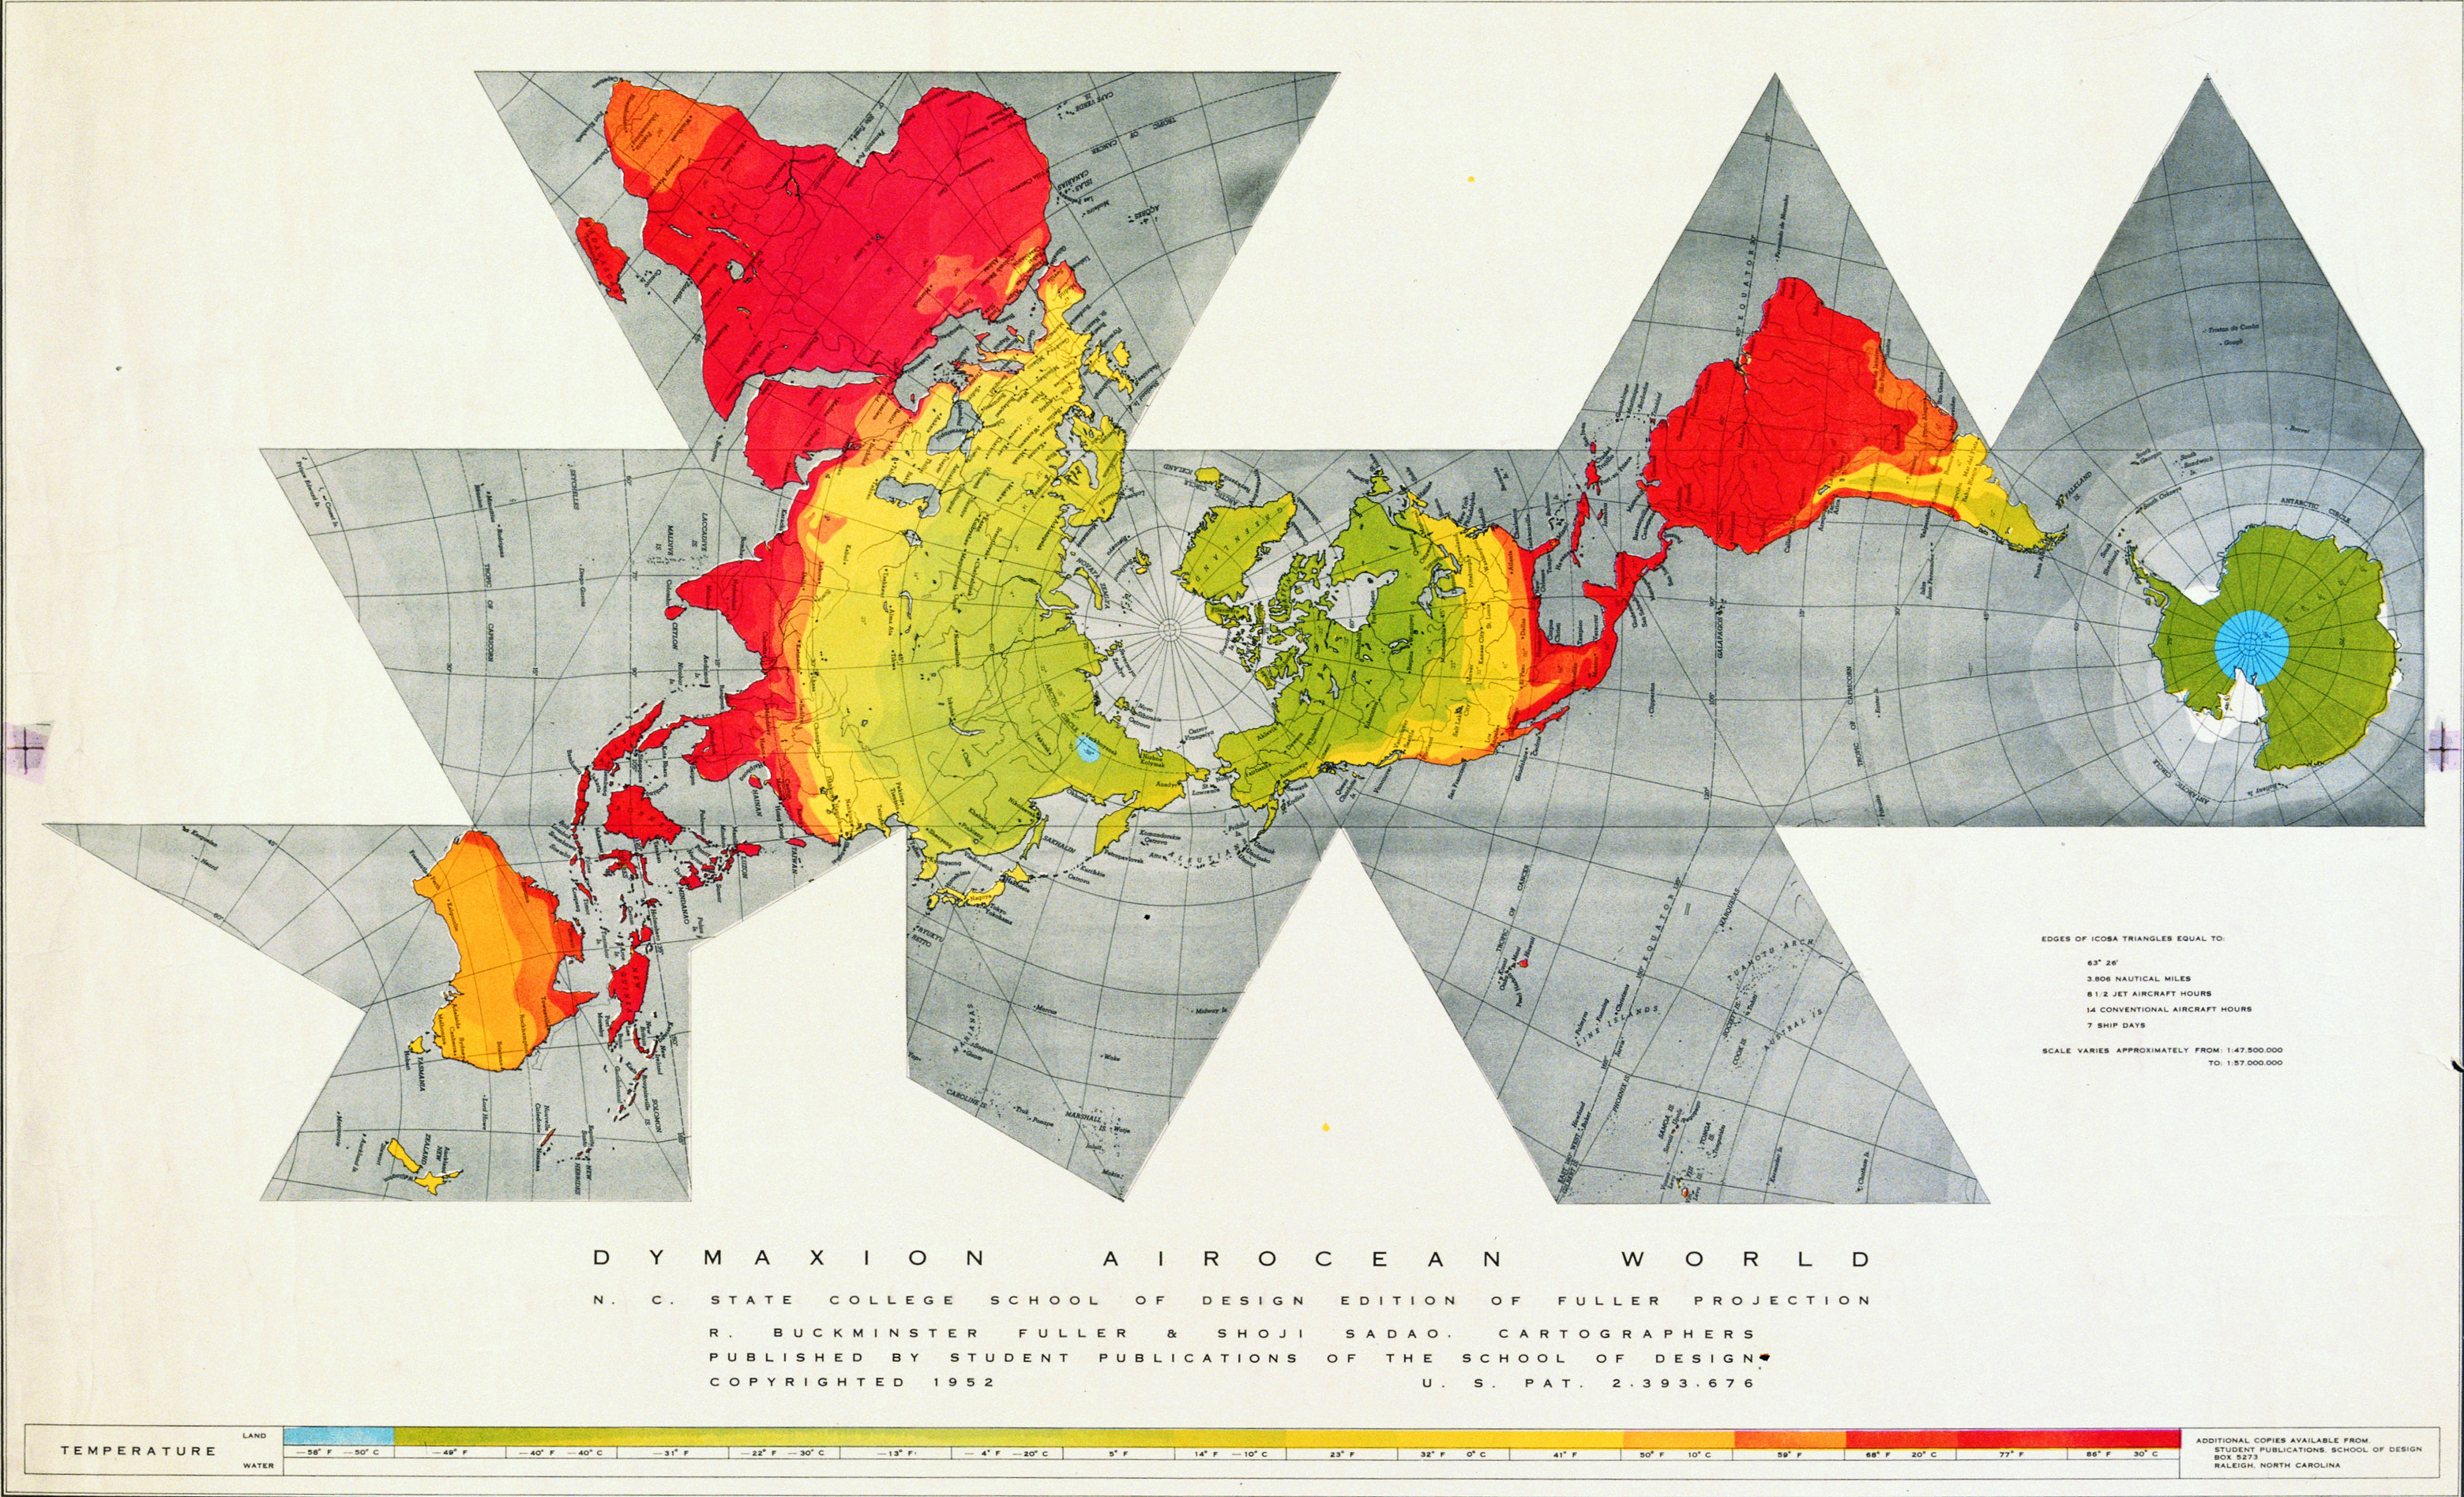 Spaceship earth the world map and what you didnt know dymaxion map created by buckminster fuller accurate in both size and location of all gumiabroncs Choice Image